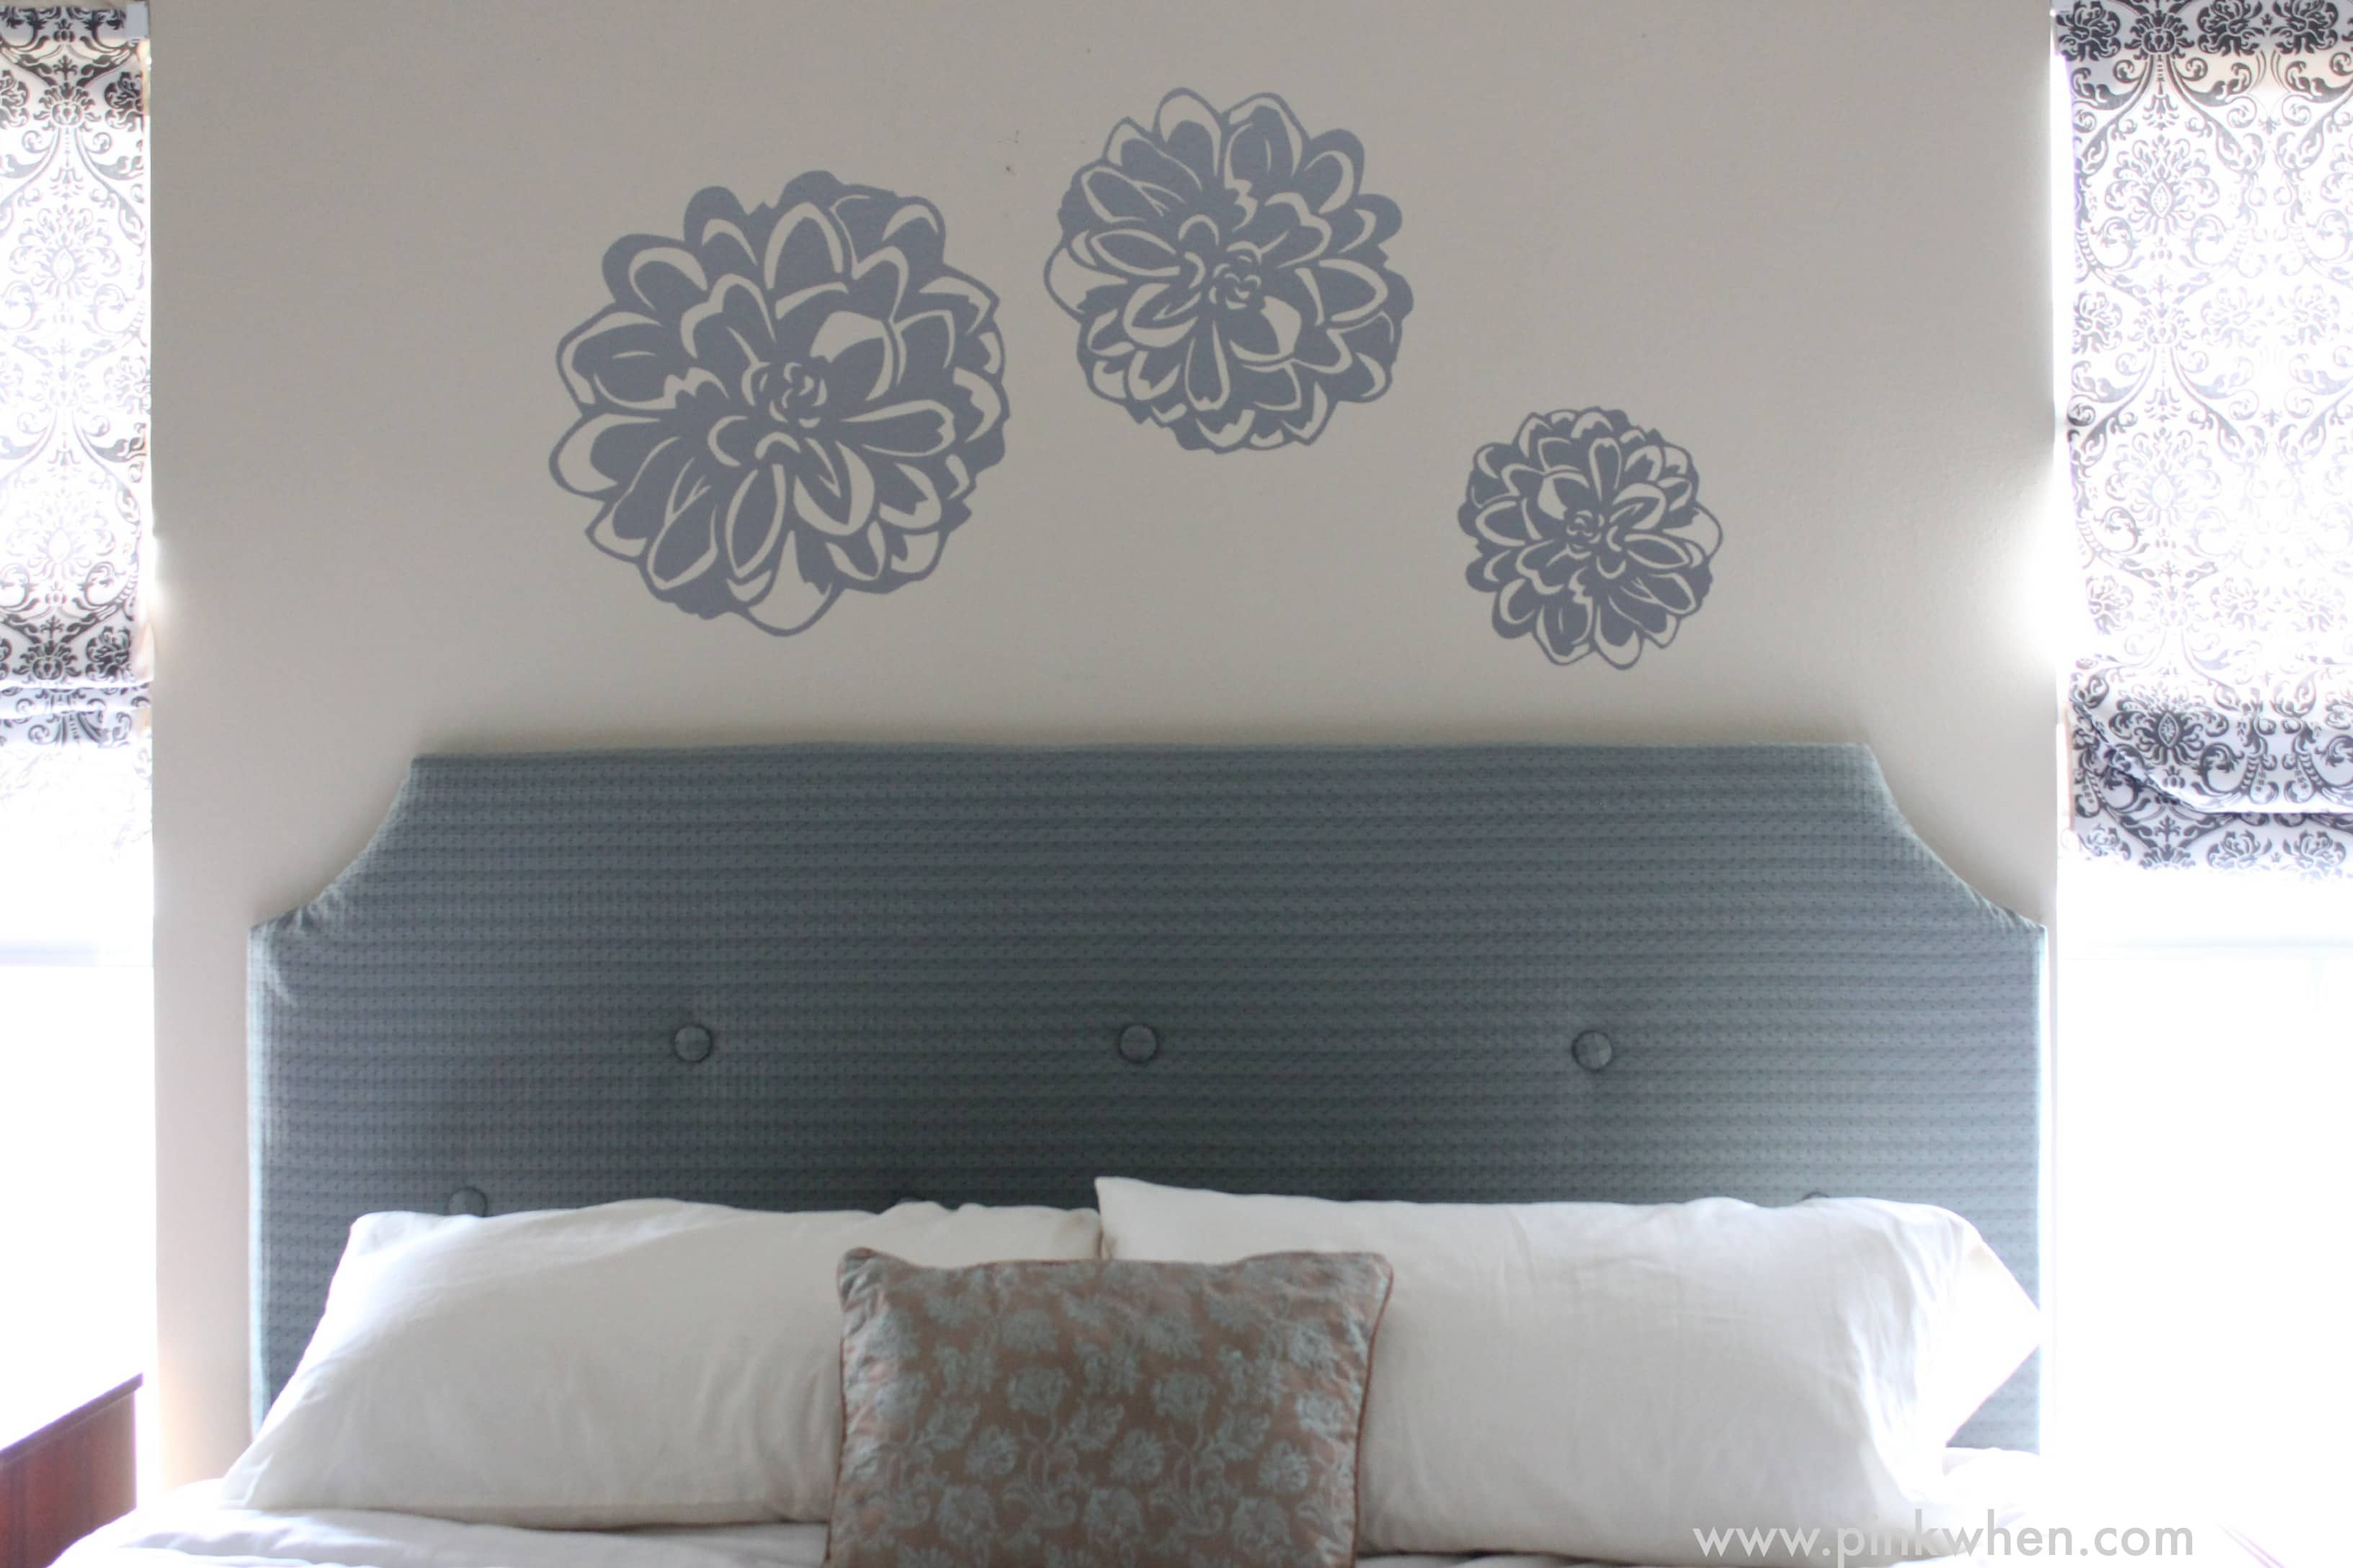 DIY Tufted Headboard For Under 100 PinkWhen